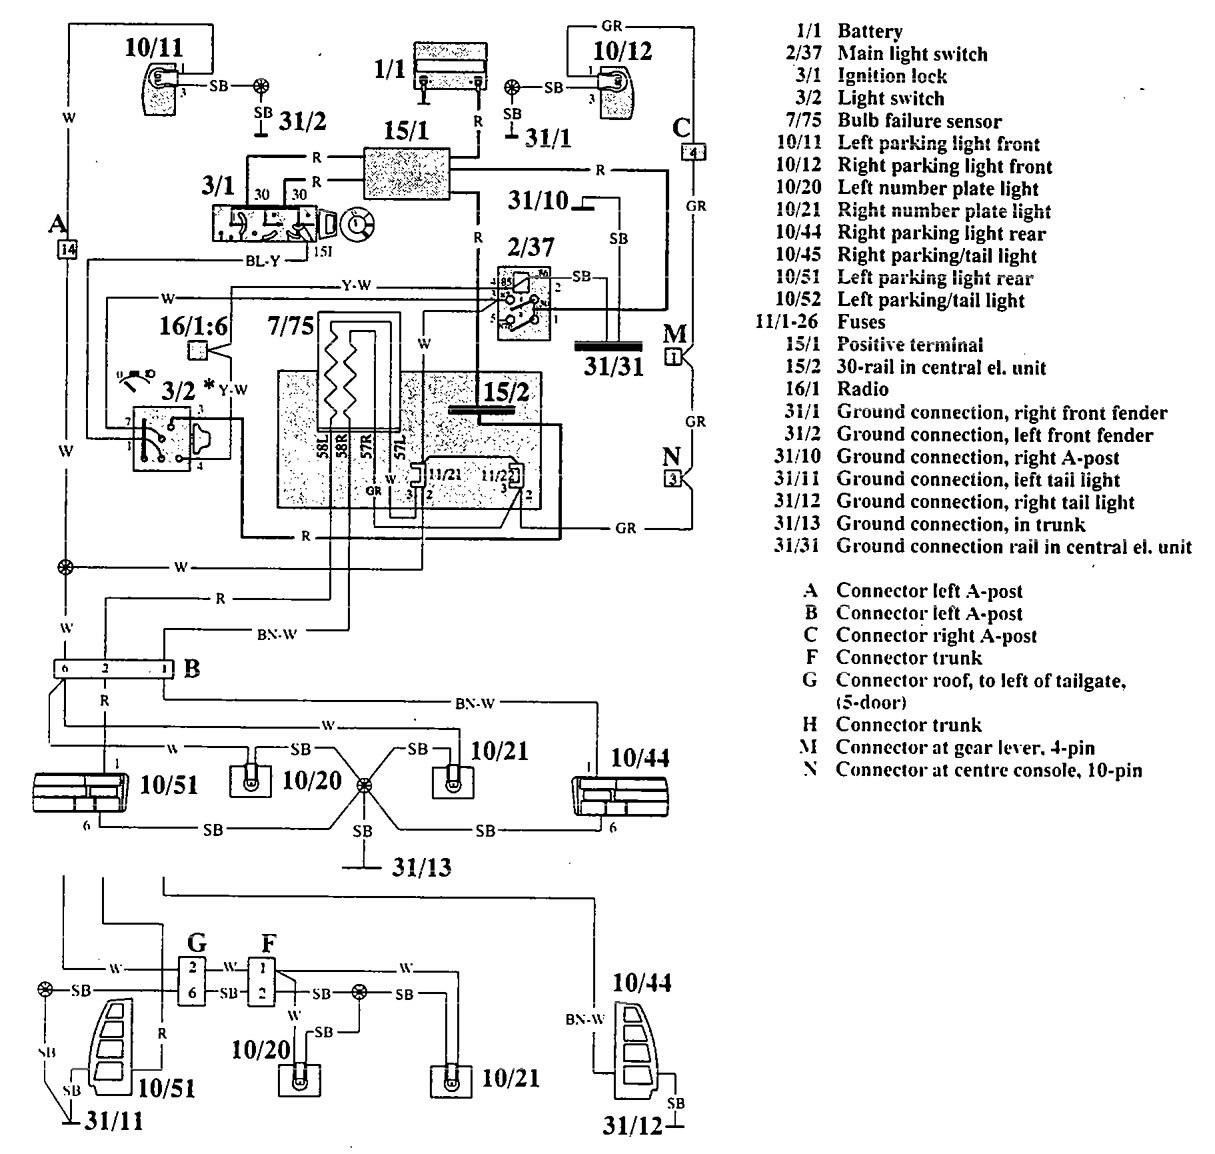 License Plate Lights Wiring Diagram For 1992 Cadillac